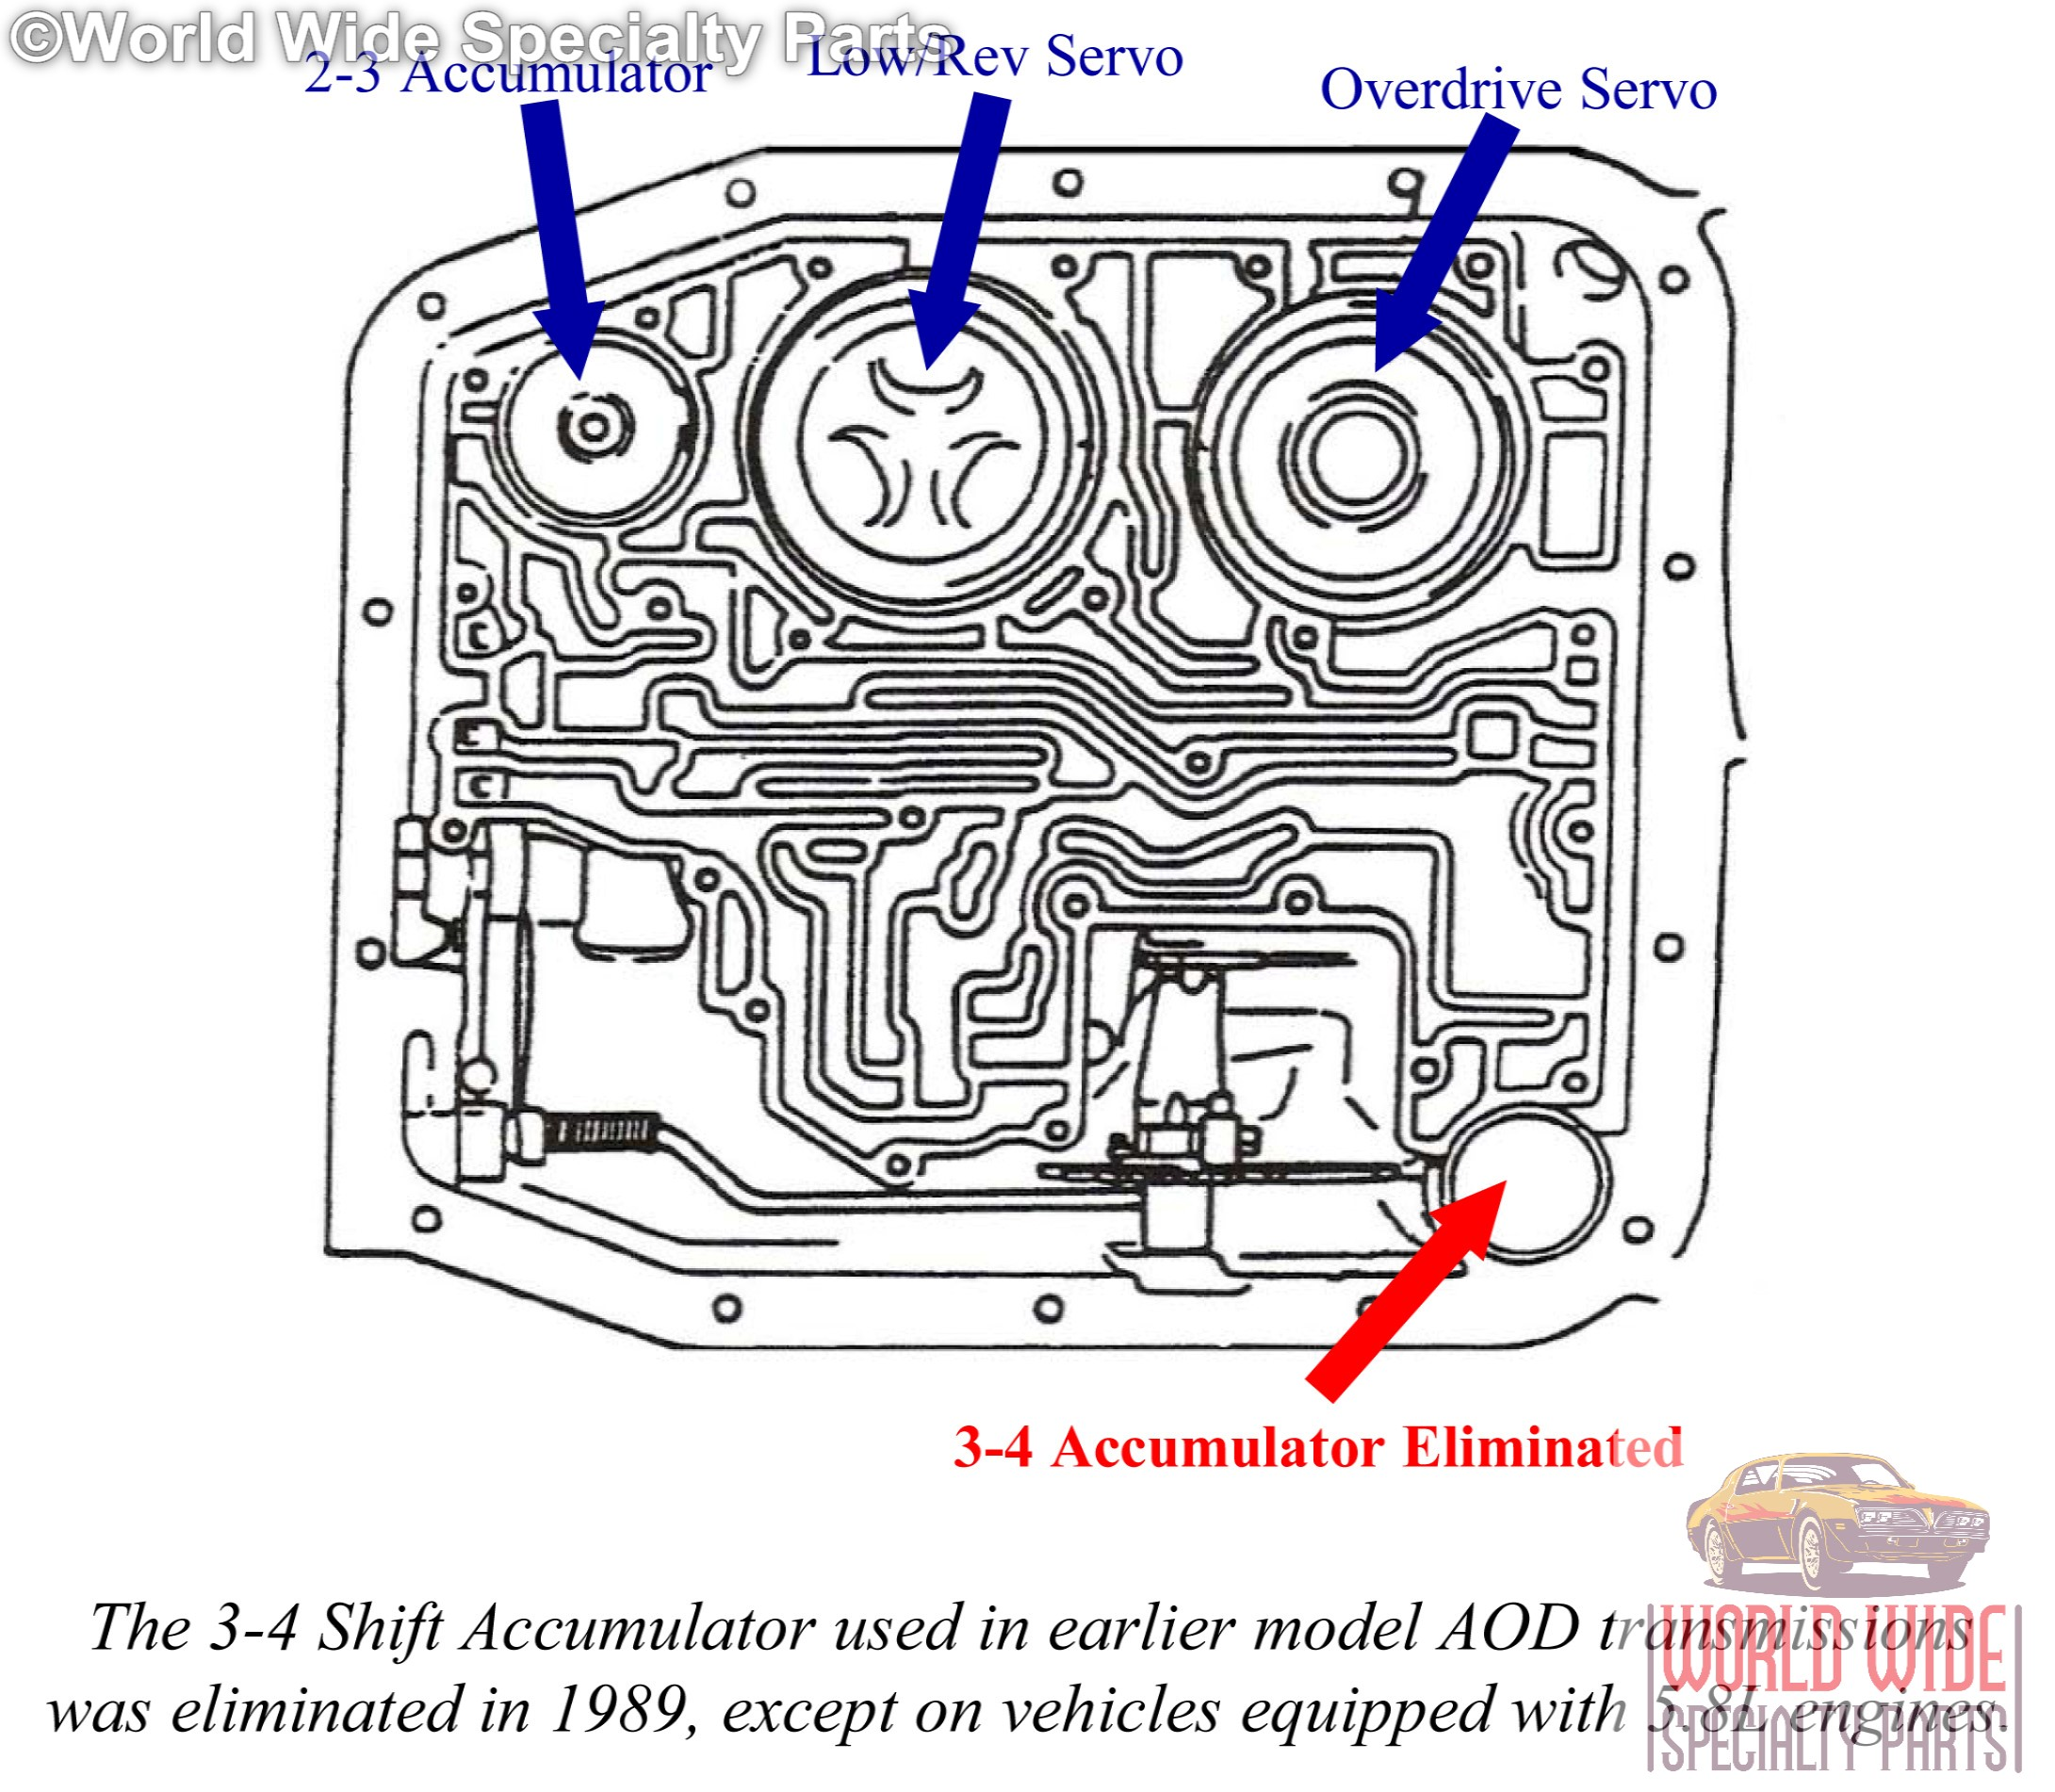 Aod Harness Diagram Wiring E4od Mlps Transmission Schematic Simple Diagramaod Library Ford Rebuild 1988